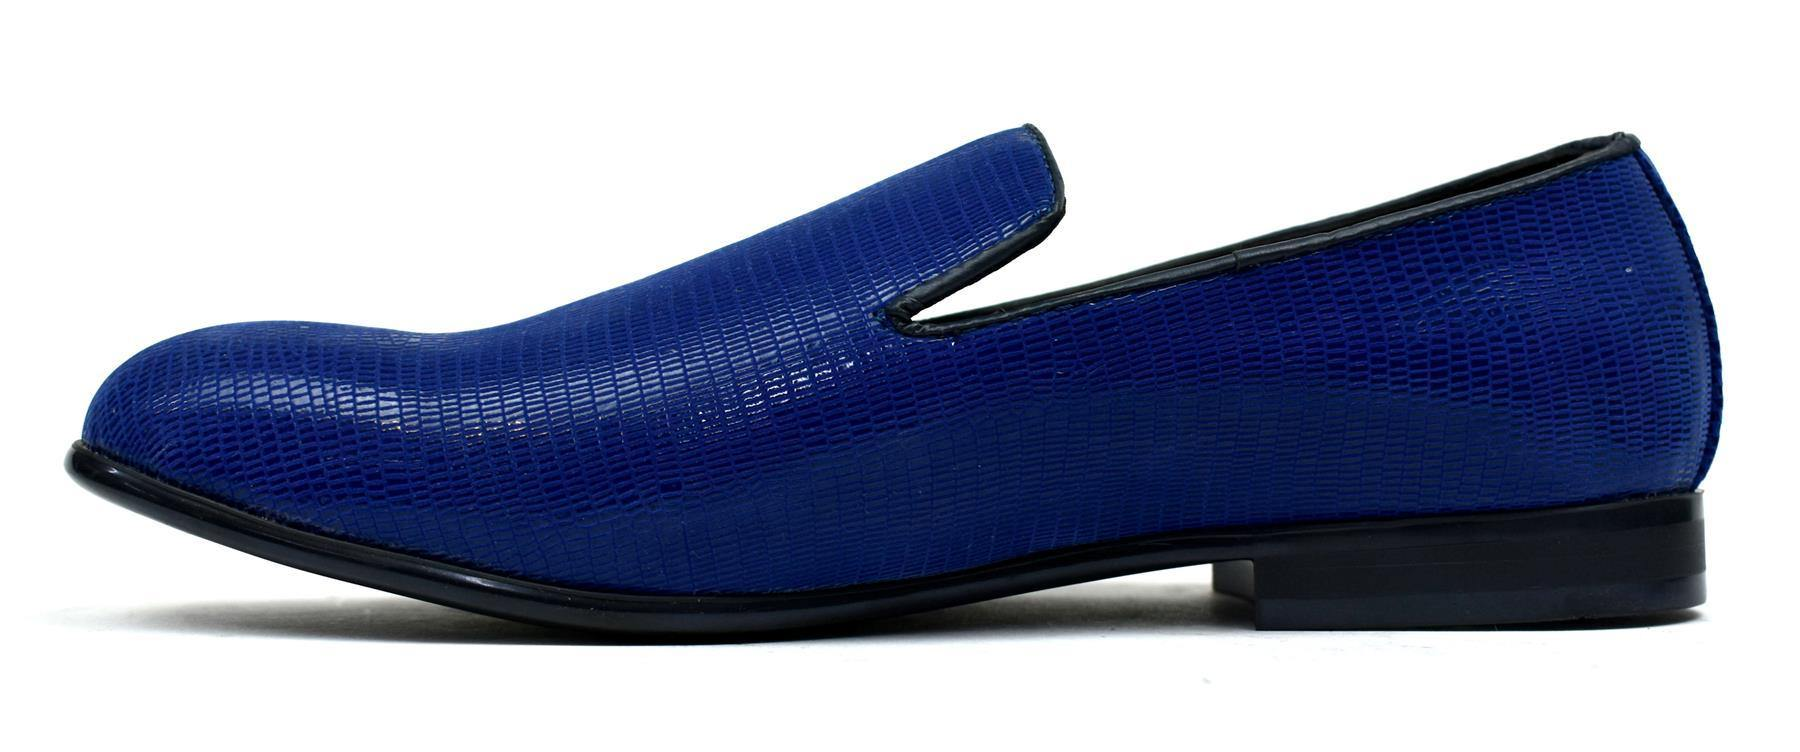 Men's Croc Loafer Blue - DadiTude